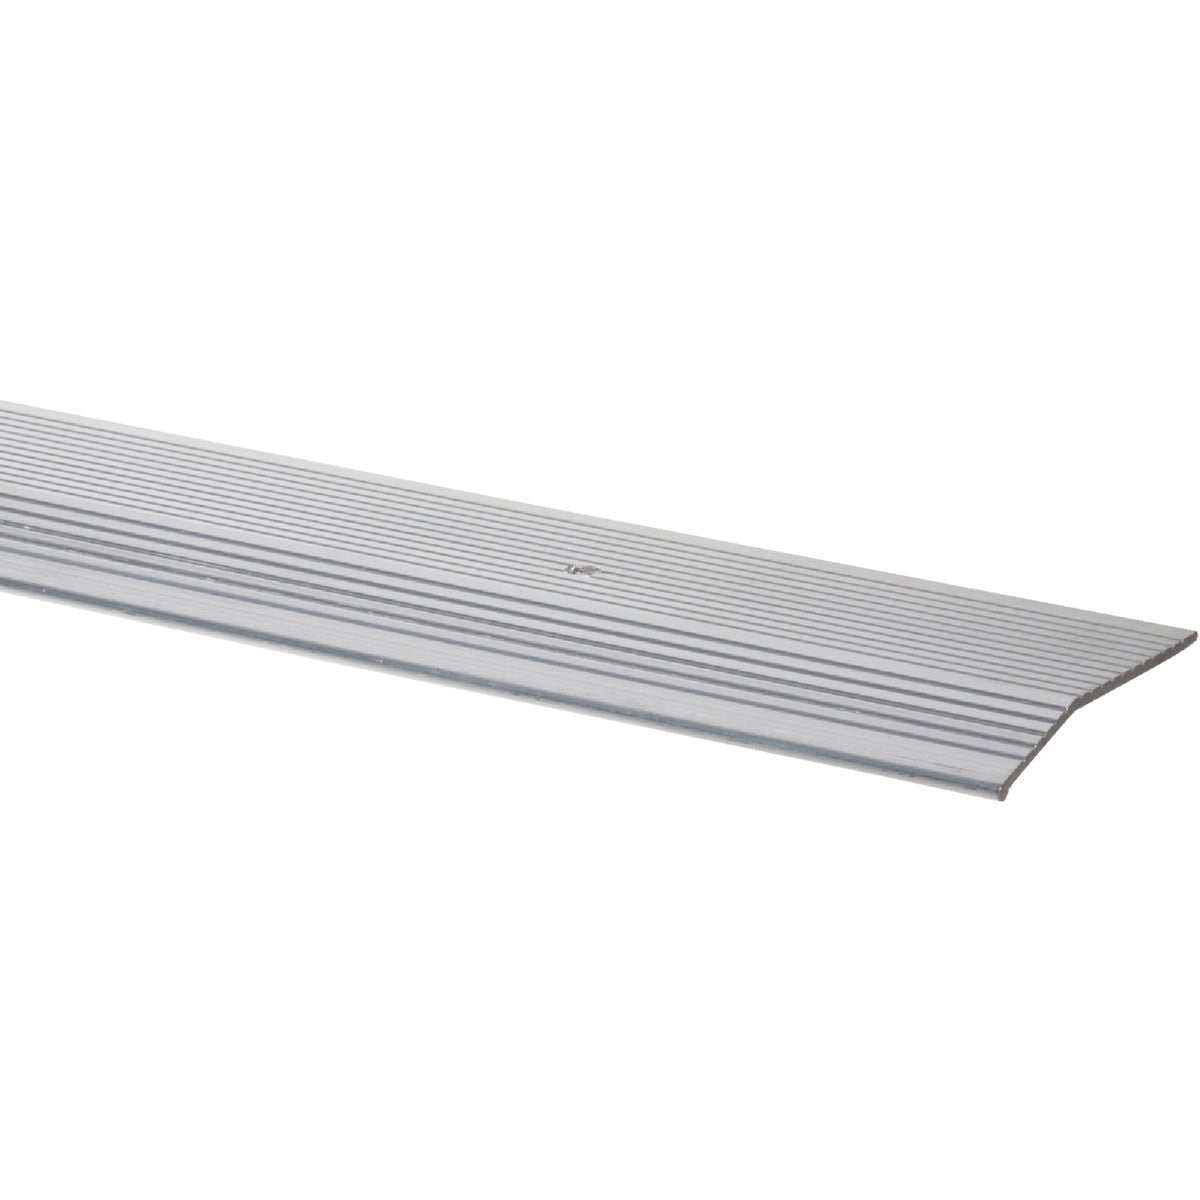 "2""X6' SLVR BINDER BAR - 78220 by M D Building Prod"